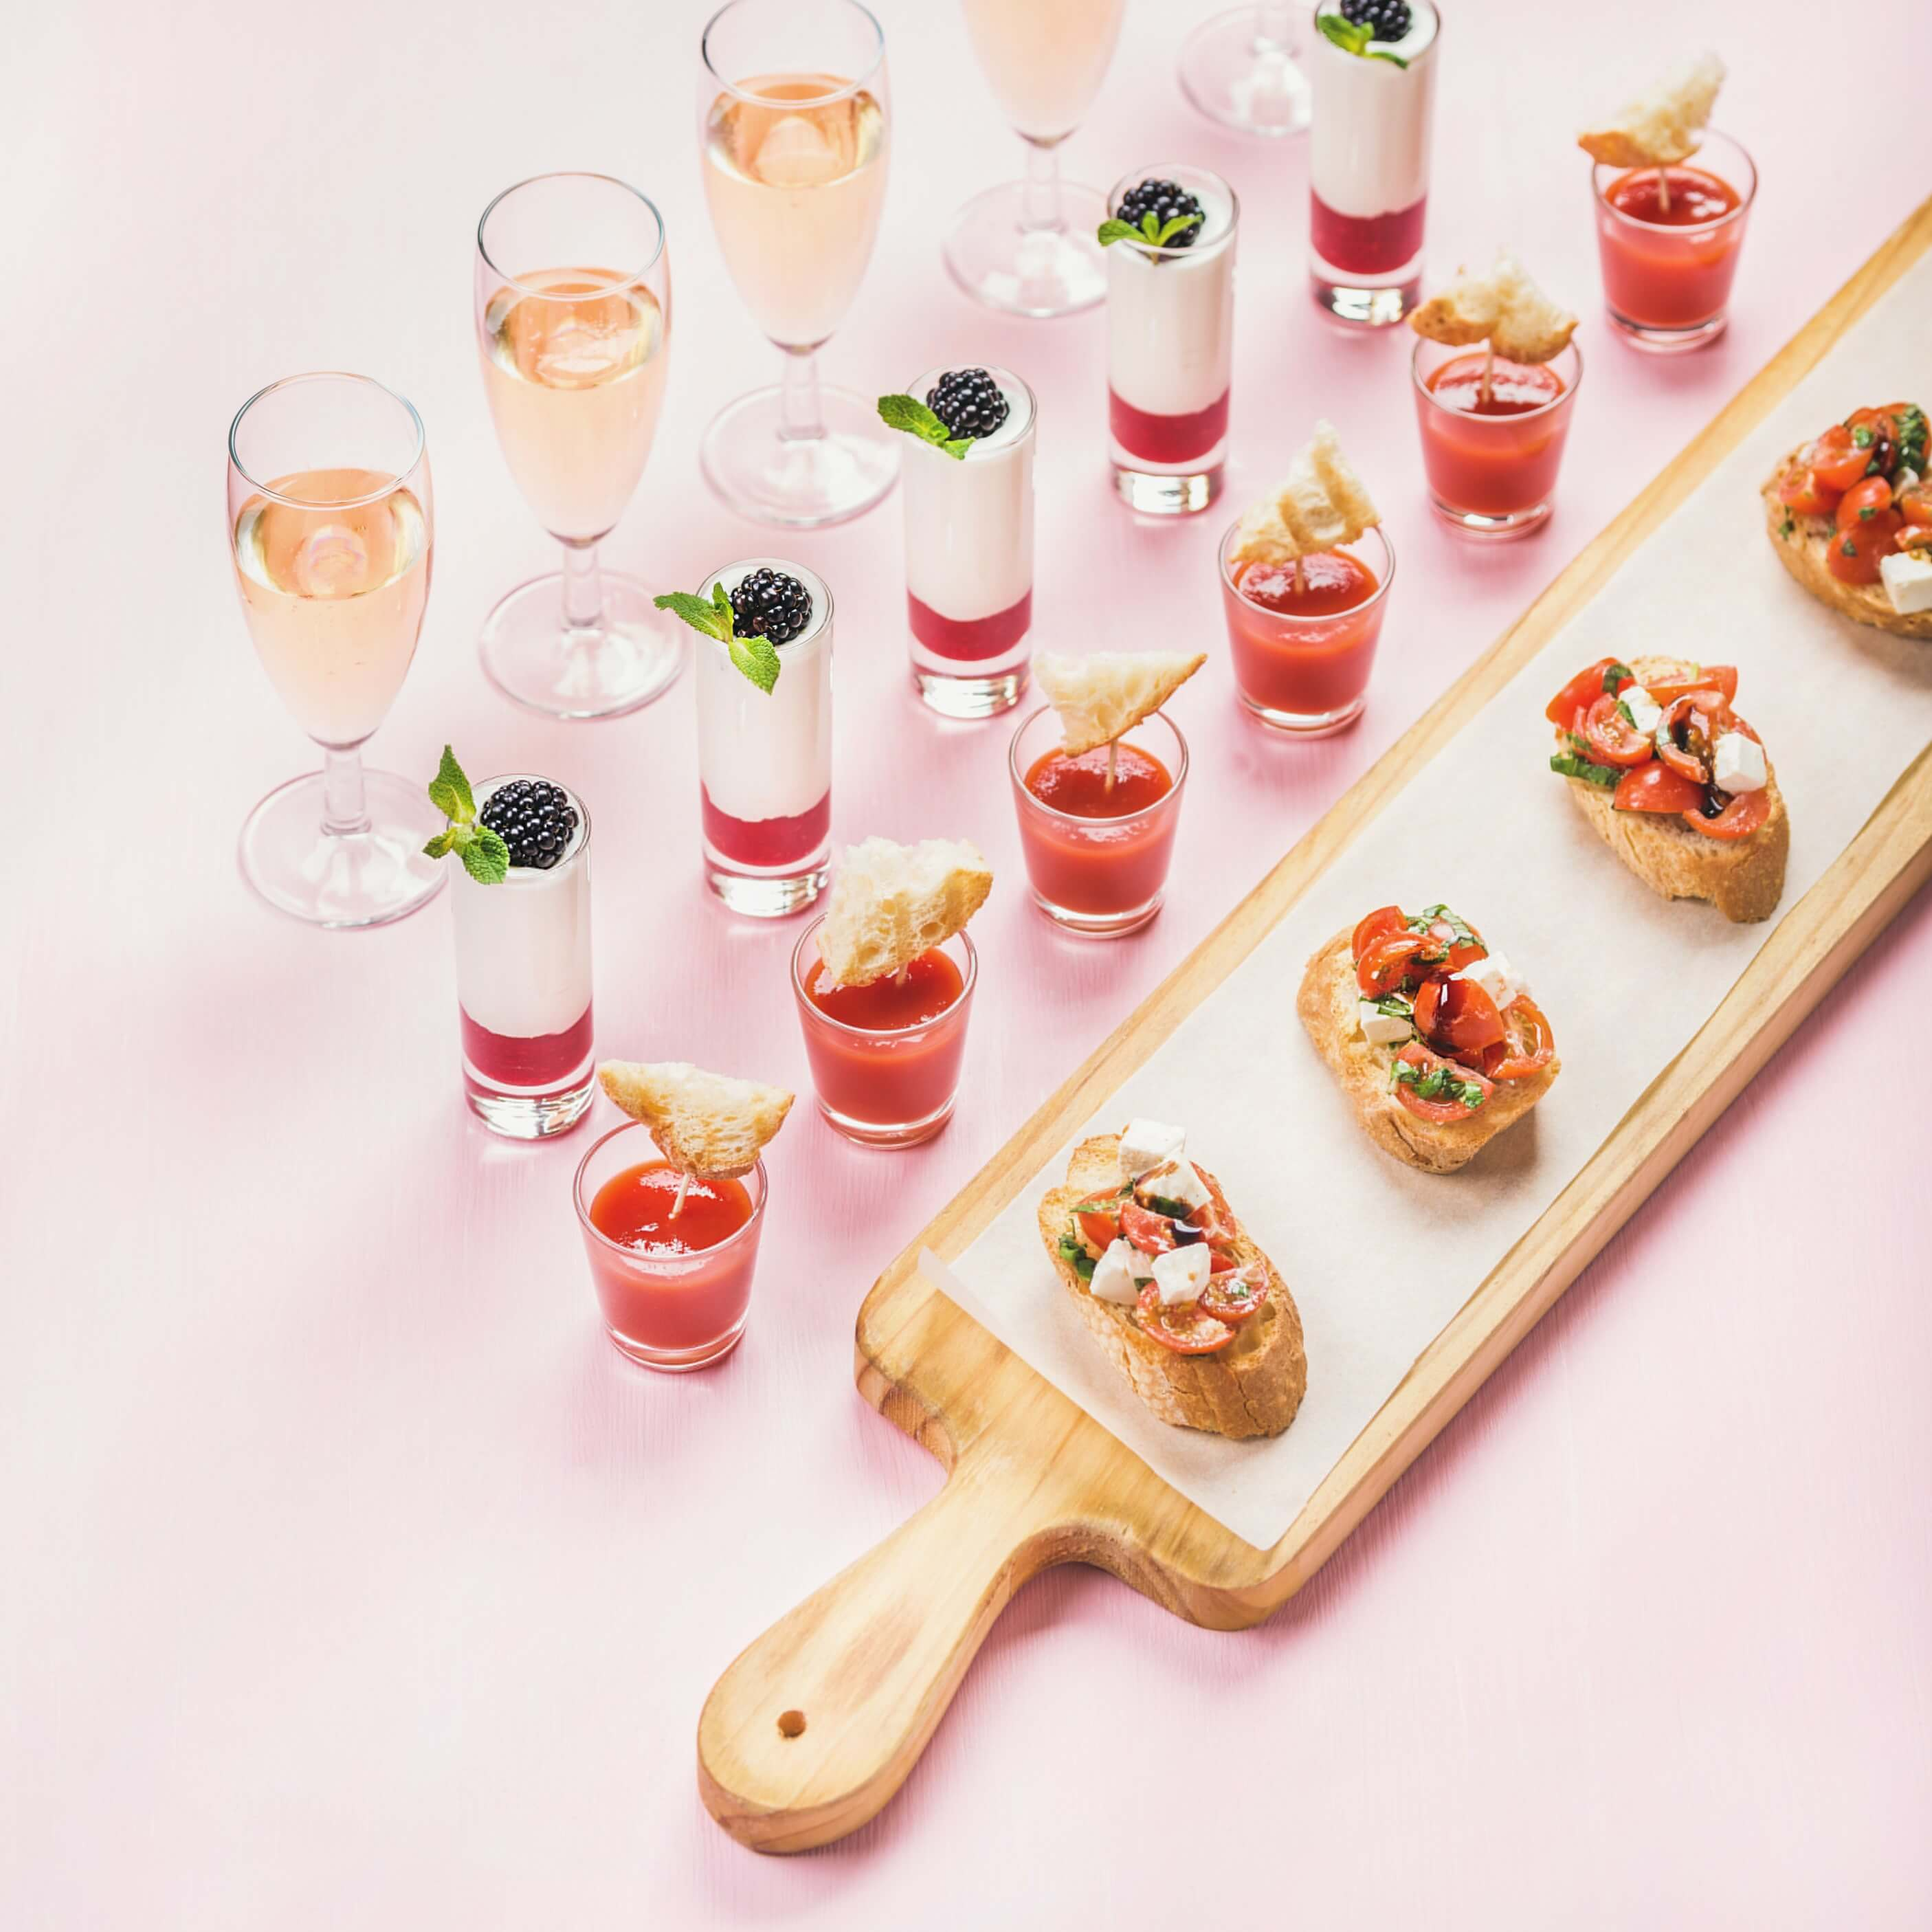 Catering spread on pink background